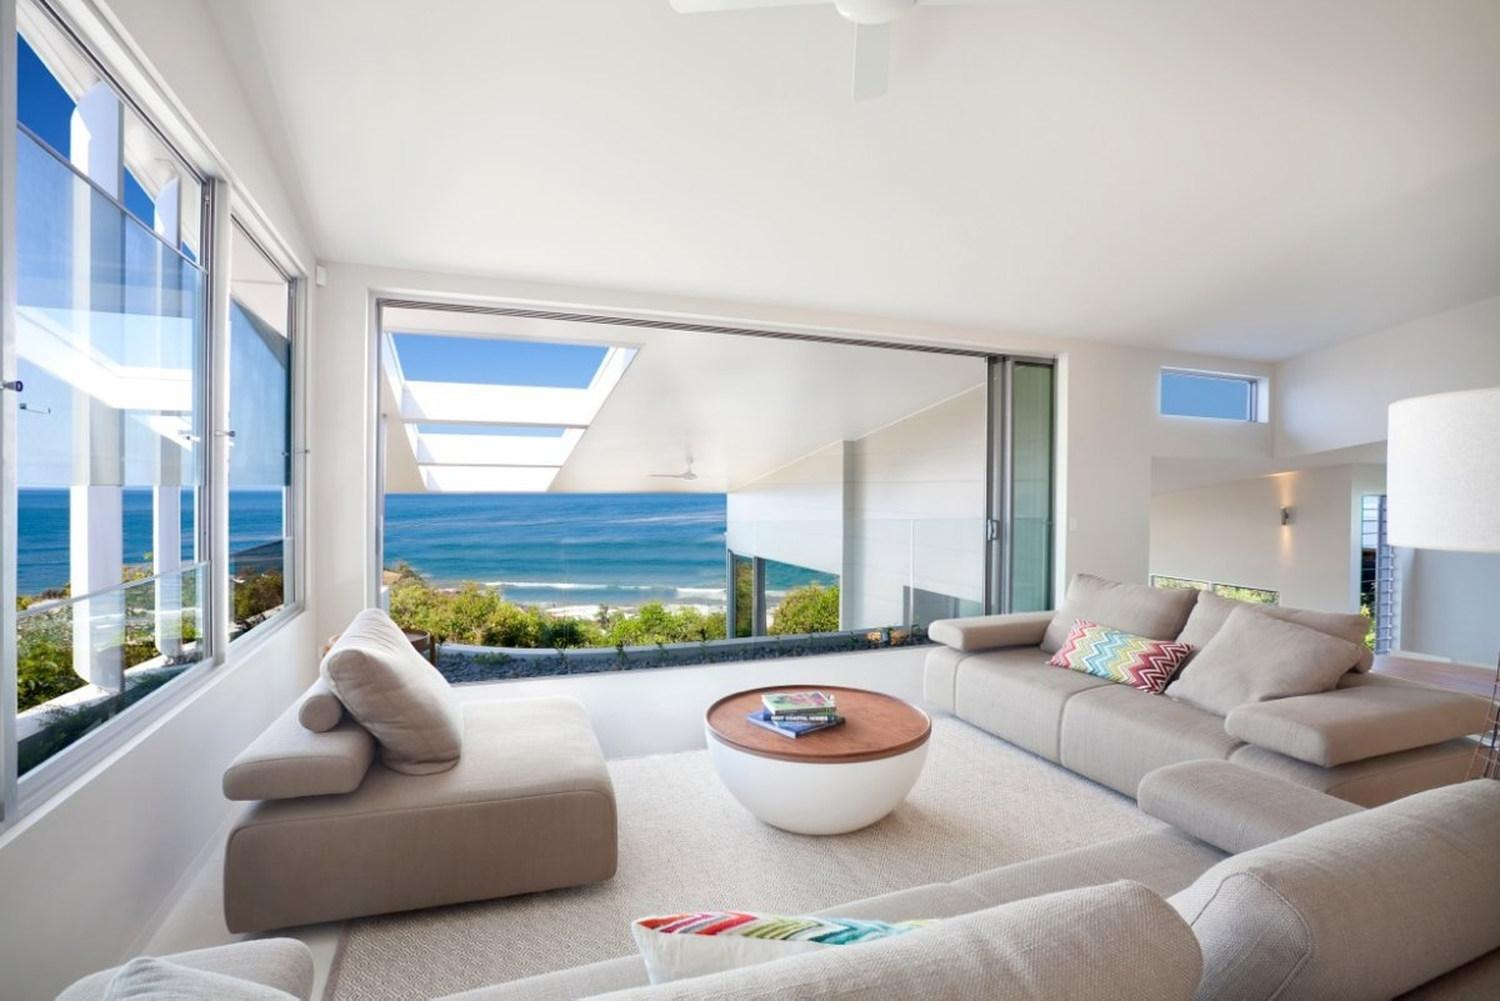 Image of: Beach House Designs Plans